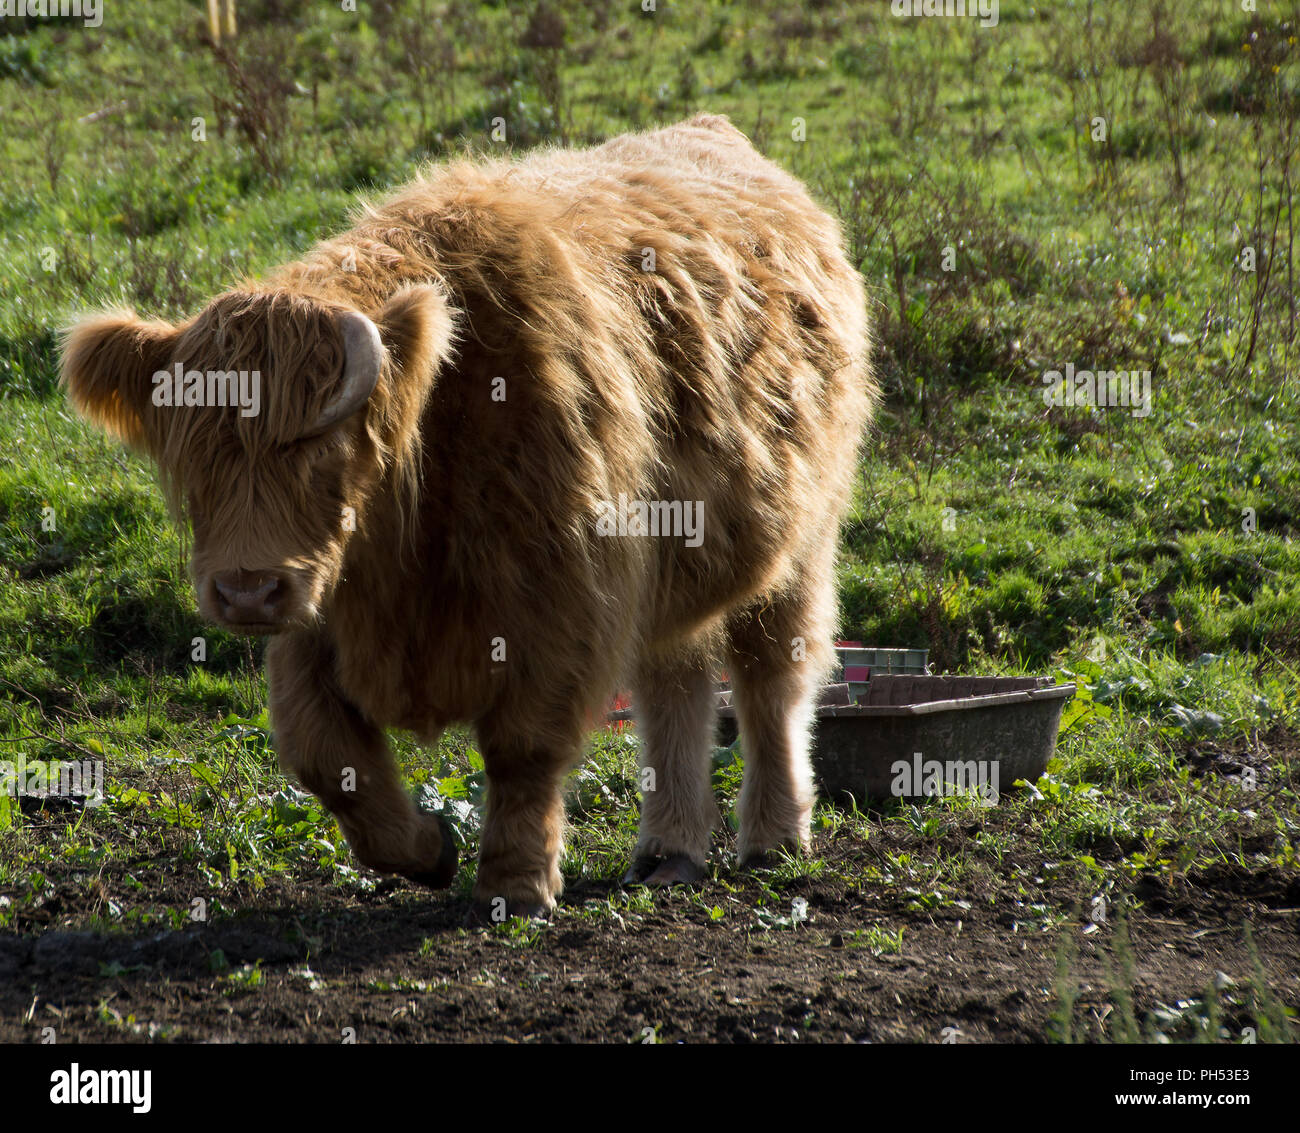 Highland cattle, or Bos taurus, in Sawbridgeworth fields with a thick fur coat in the sunshine - Stock Image